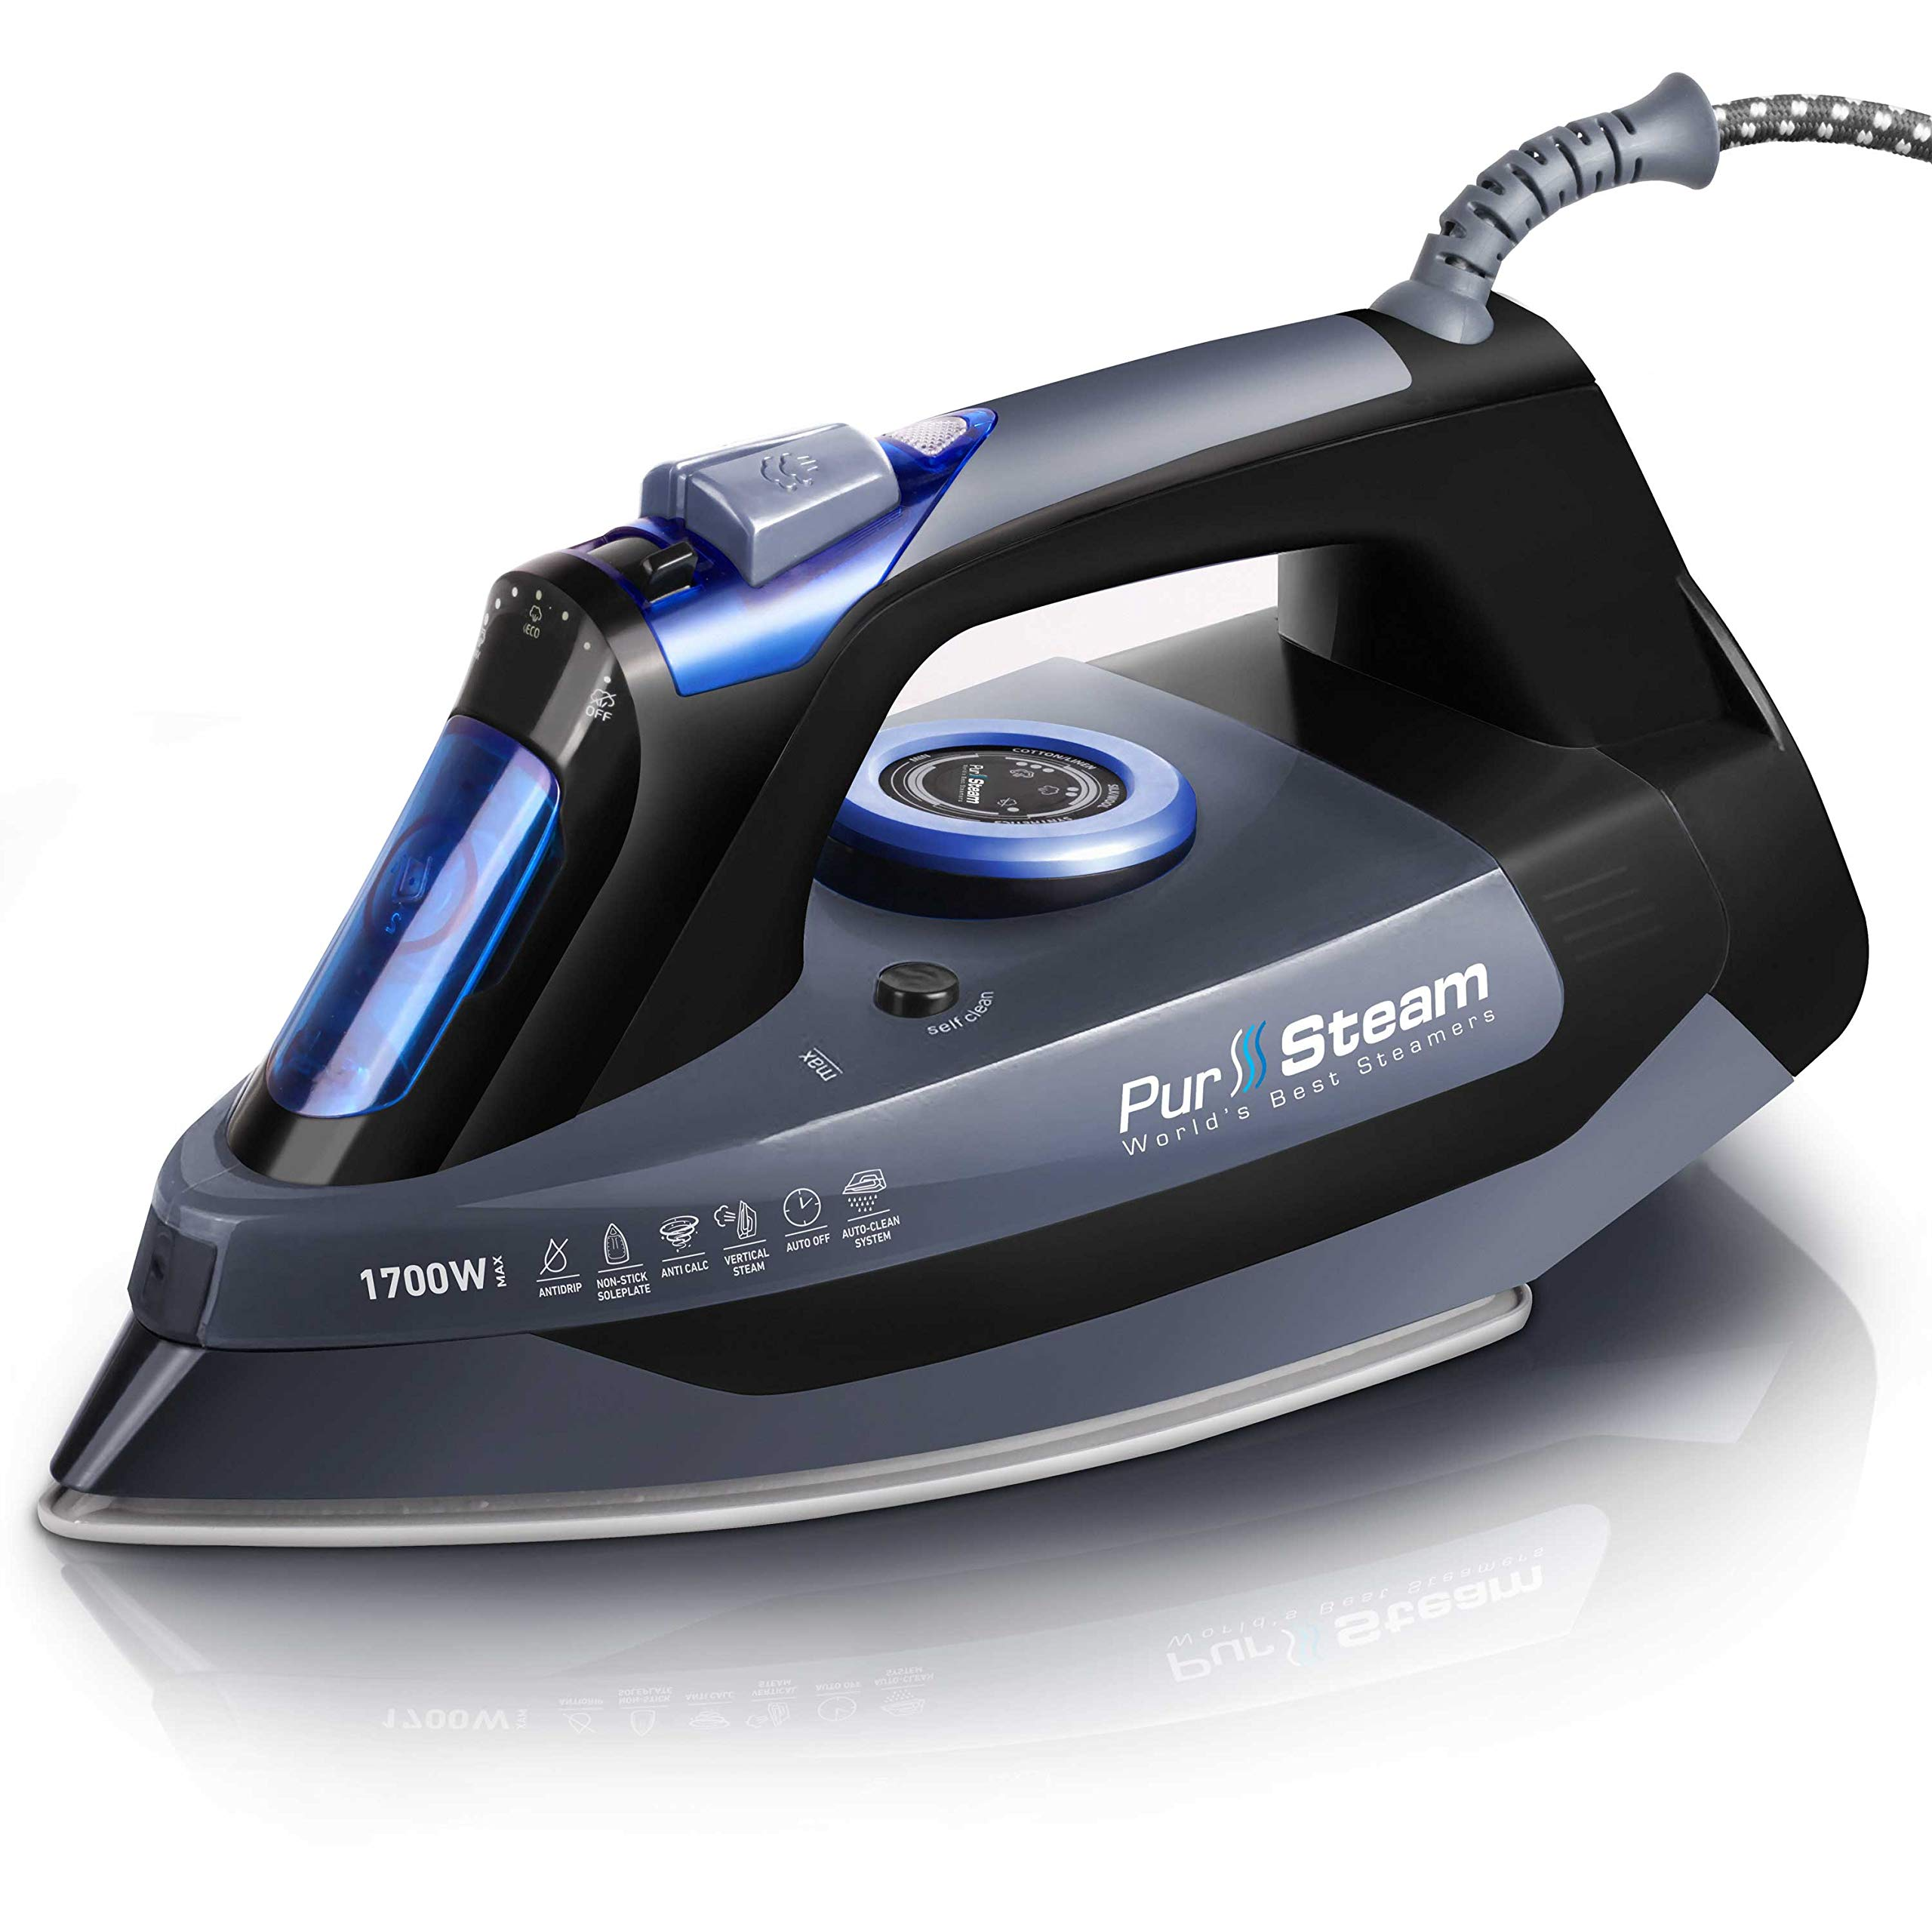 Professional Grade 1700W Steam Iron for Clothes with Rapid Even Heat Scratch Resistant Stainless Steel Sole Plate, True Position Axial Aligned Steam Holes, Self-Cleaning Function + Thermostat Dial by PurSteam World's Best Steamers (Image #1)